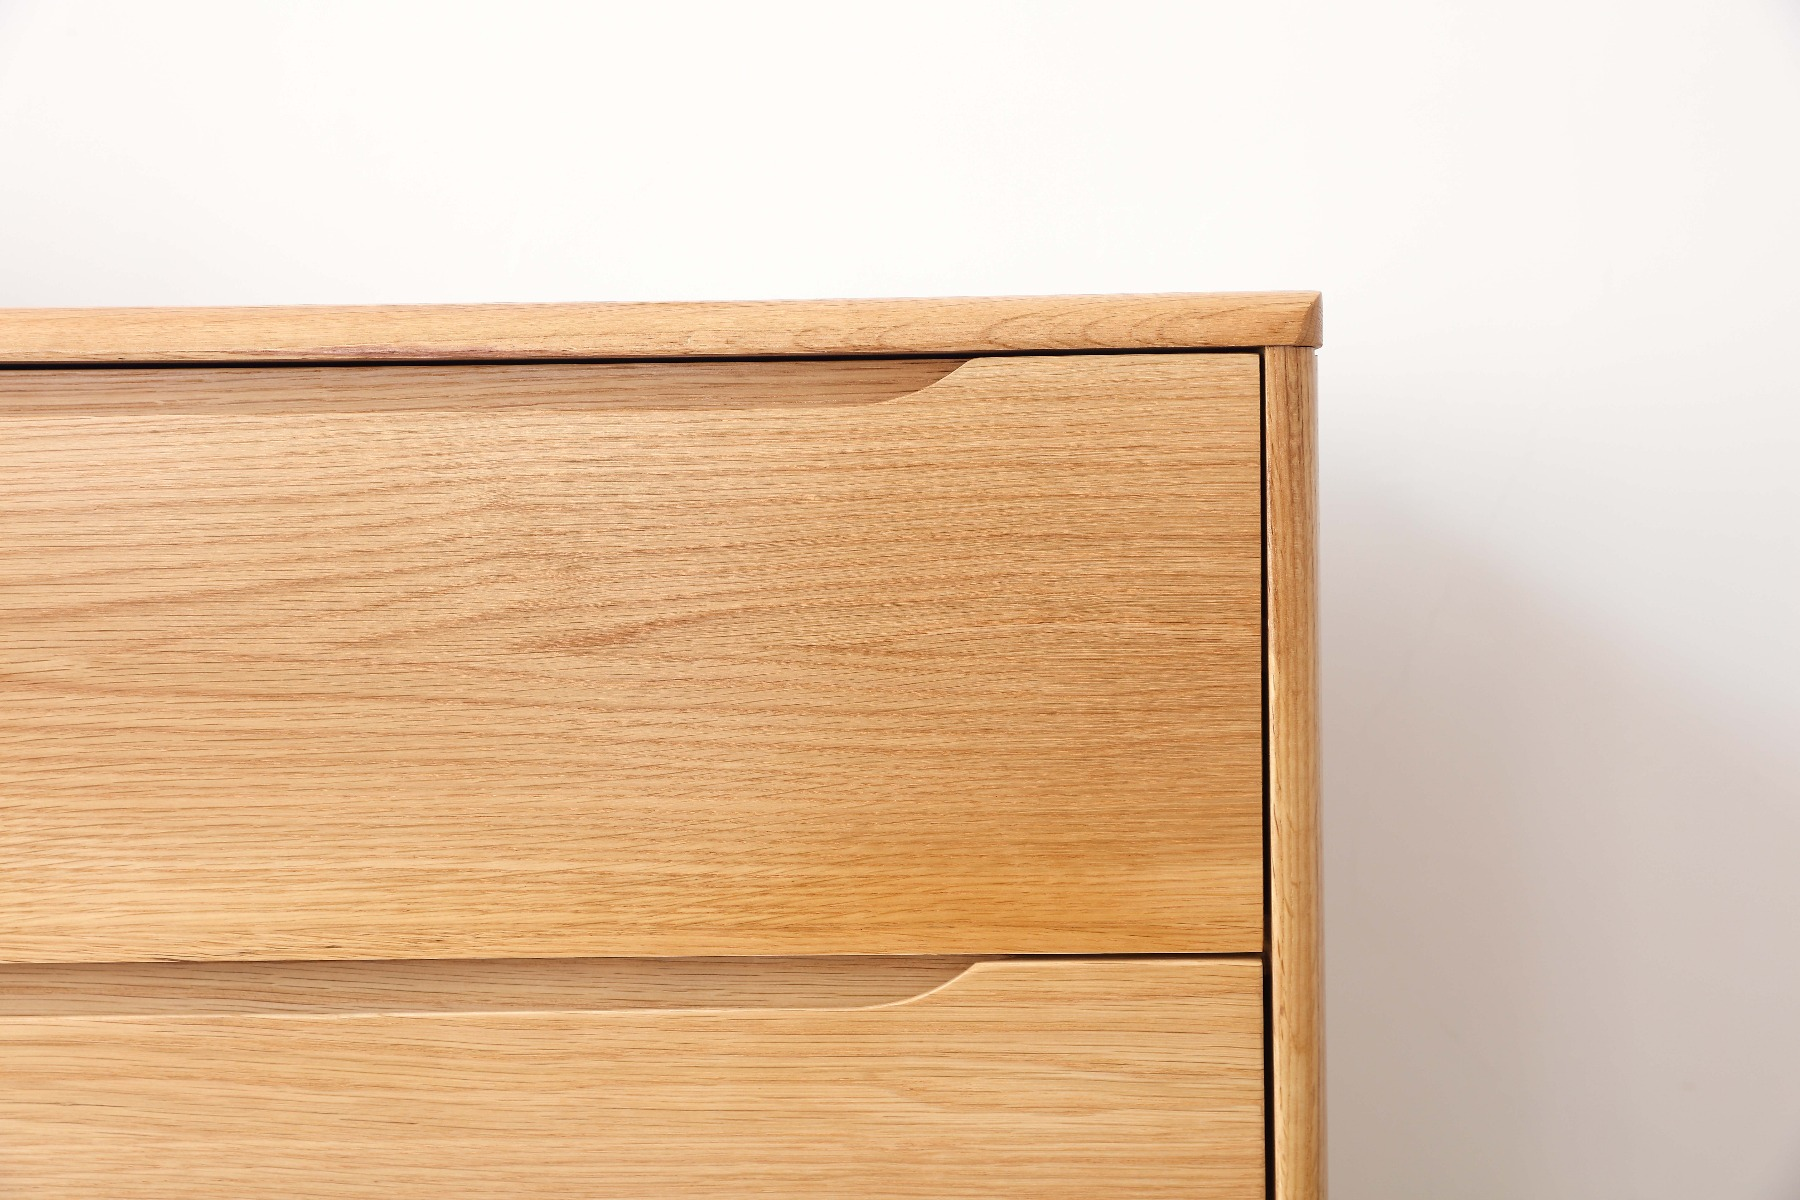 Inset drawer handles, and again these beautiful grain textures.